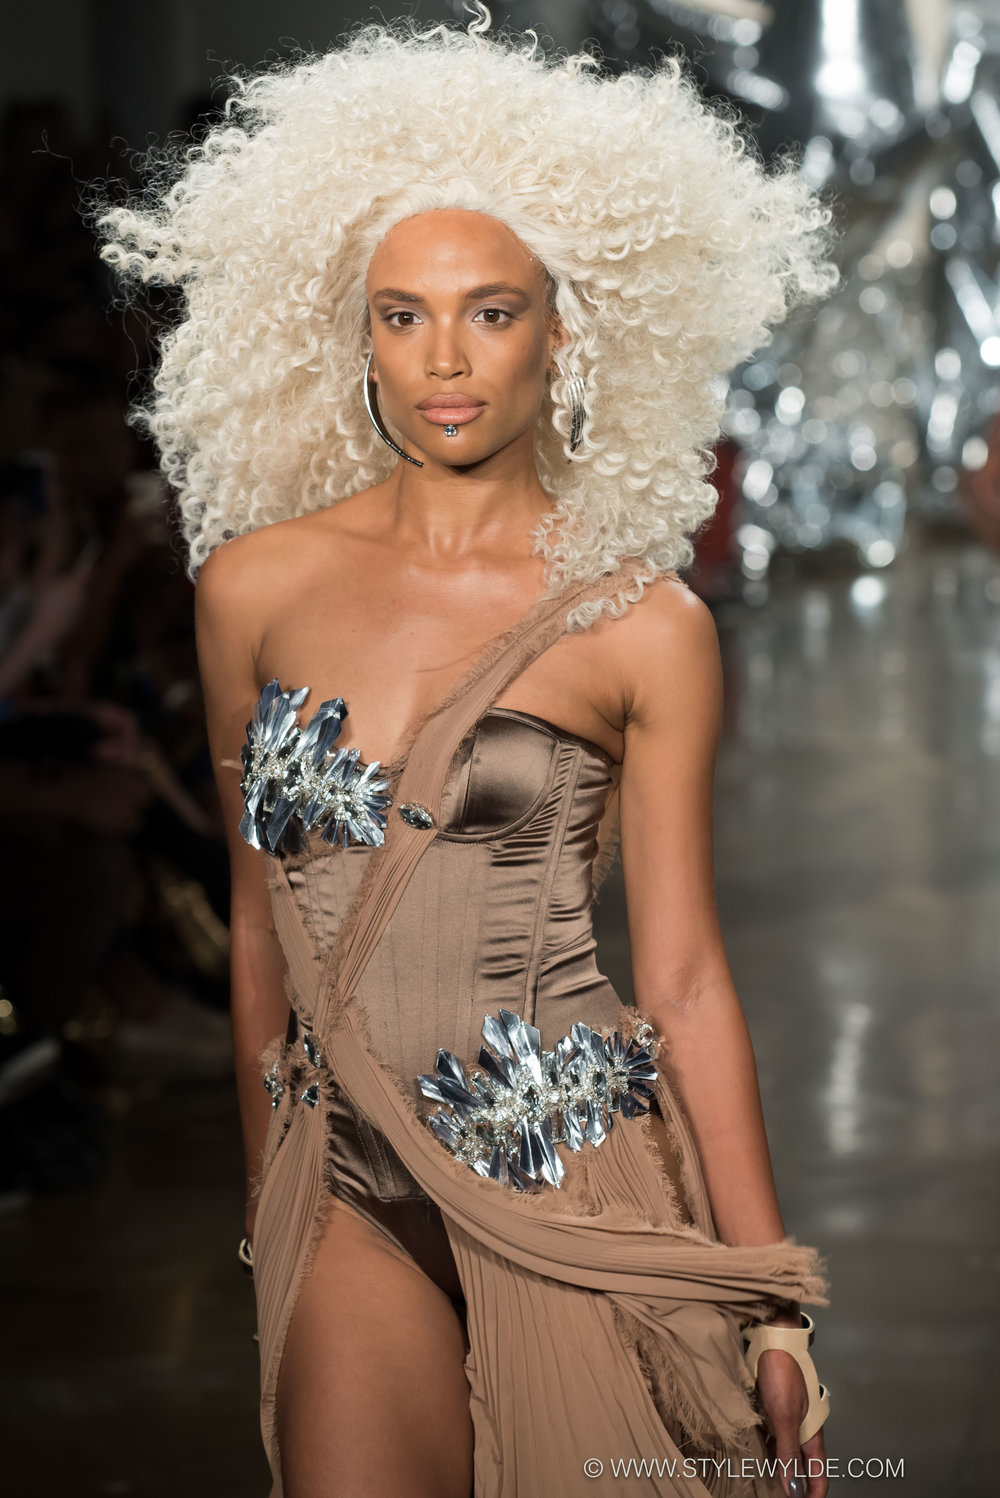 stylewylde-The Blonds SS17-FOH- Edits-8.jpg